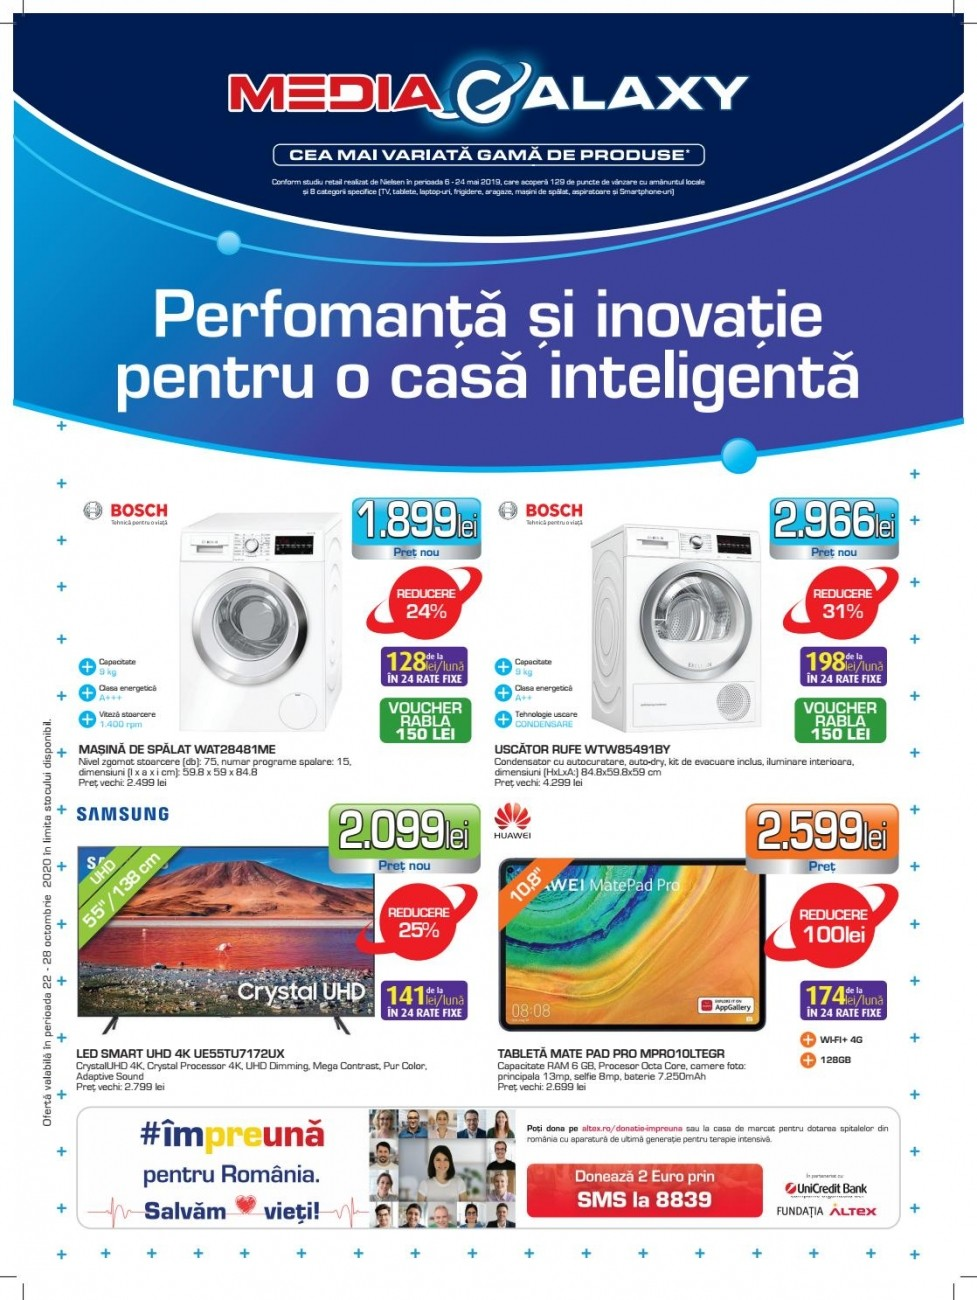 Catalog MEDIA GALAXY - Performanta si inovatie prntru o casa inteligenta! 22 Octombrie 2020 - 28 Octombrie 2020